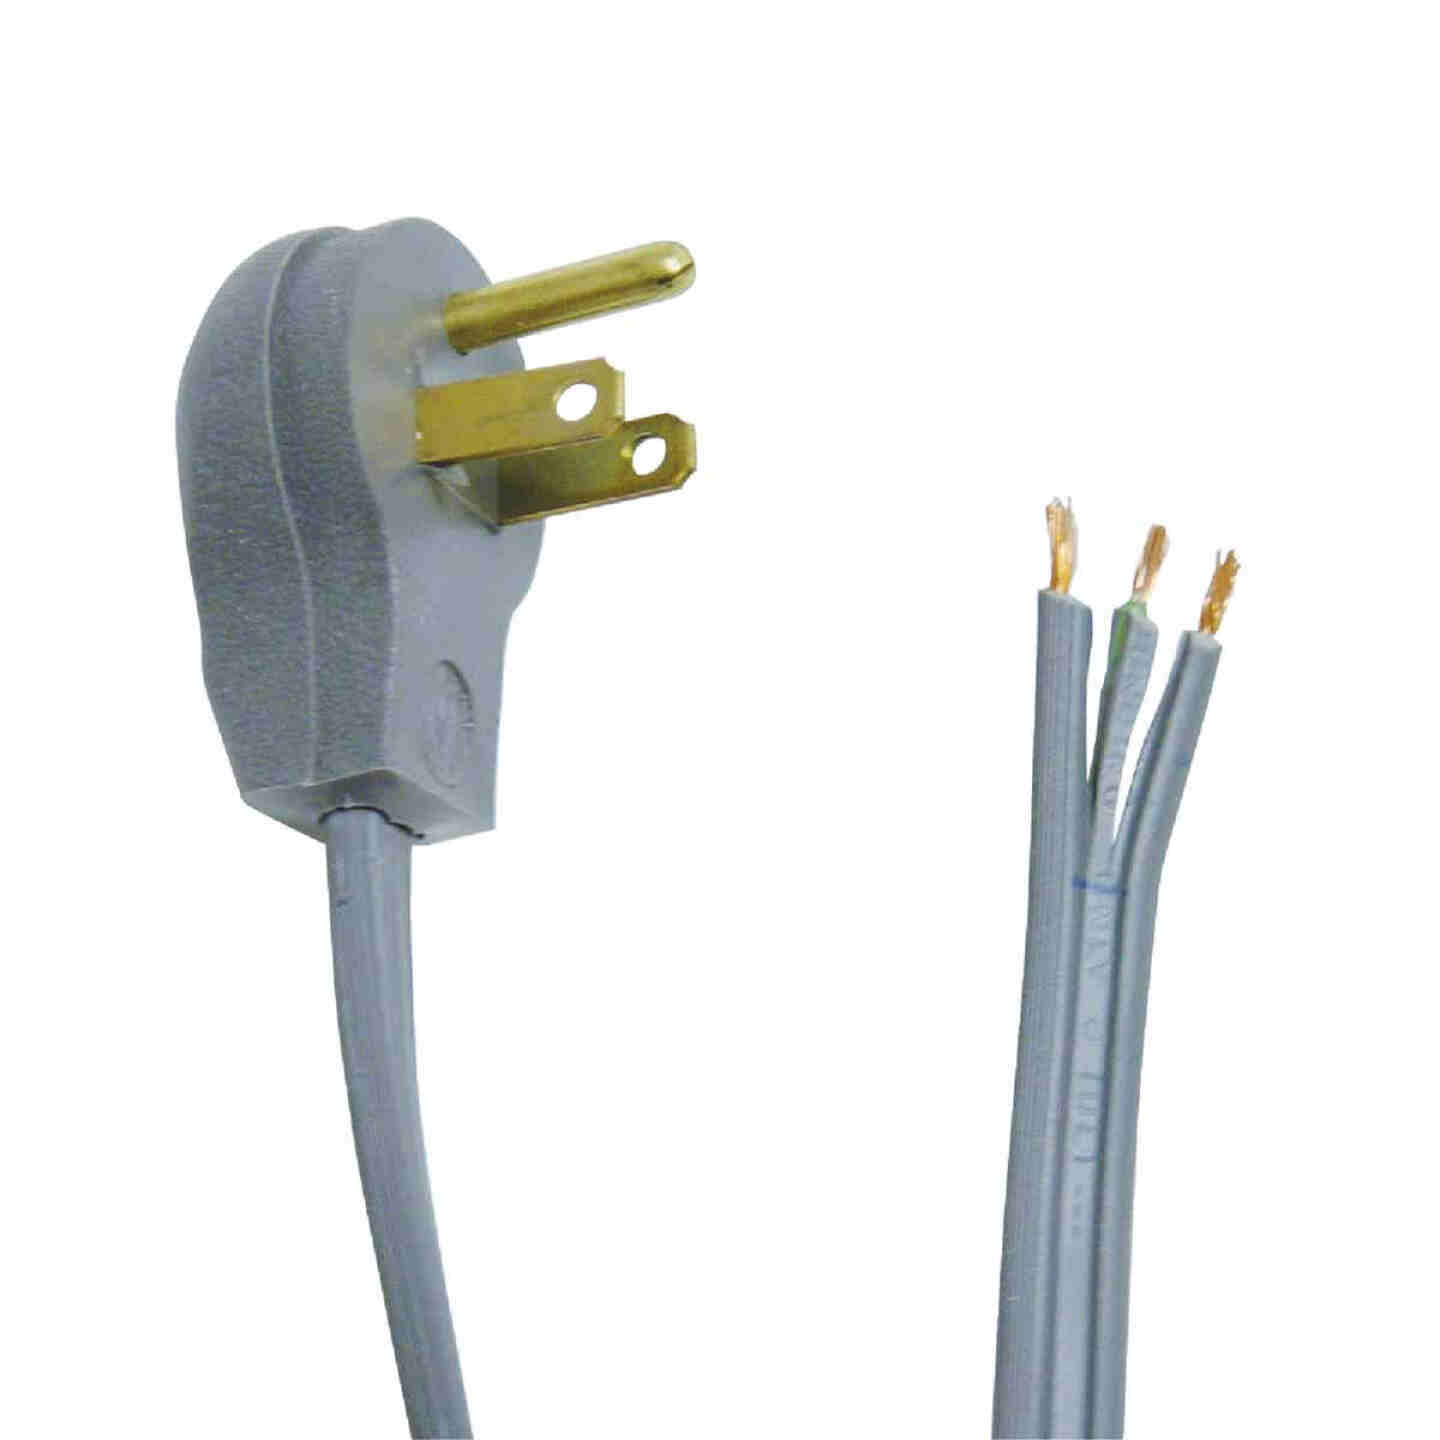 Woods 3 Ft. 16/3 13A Appliance Cord Image 1